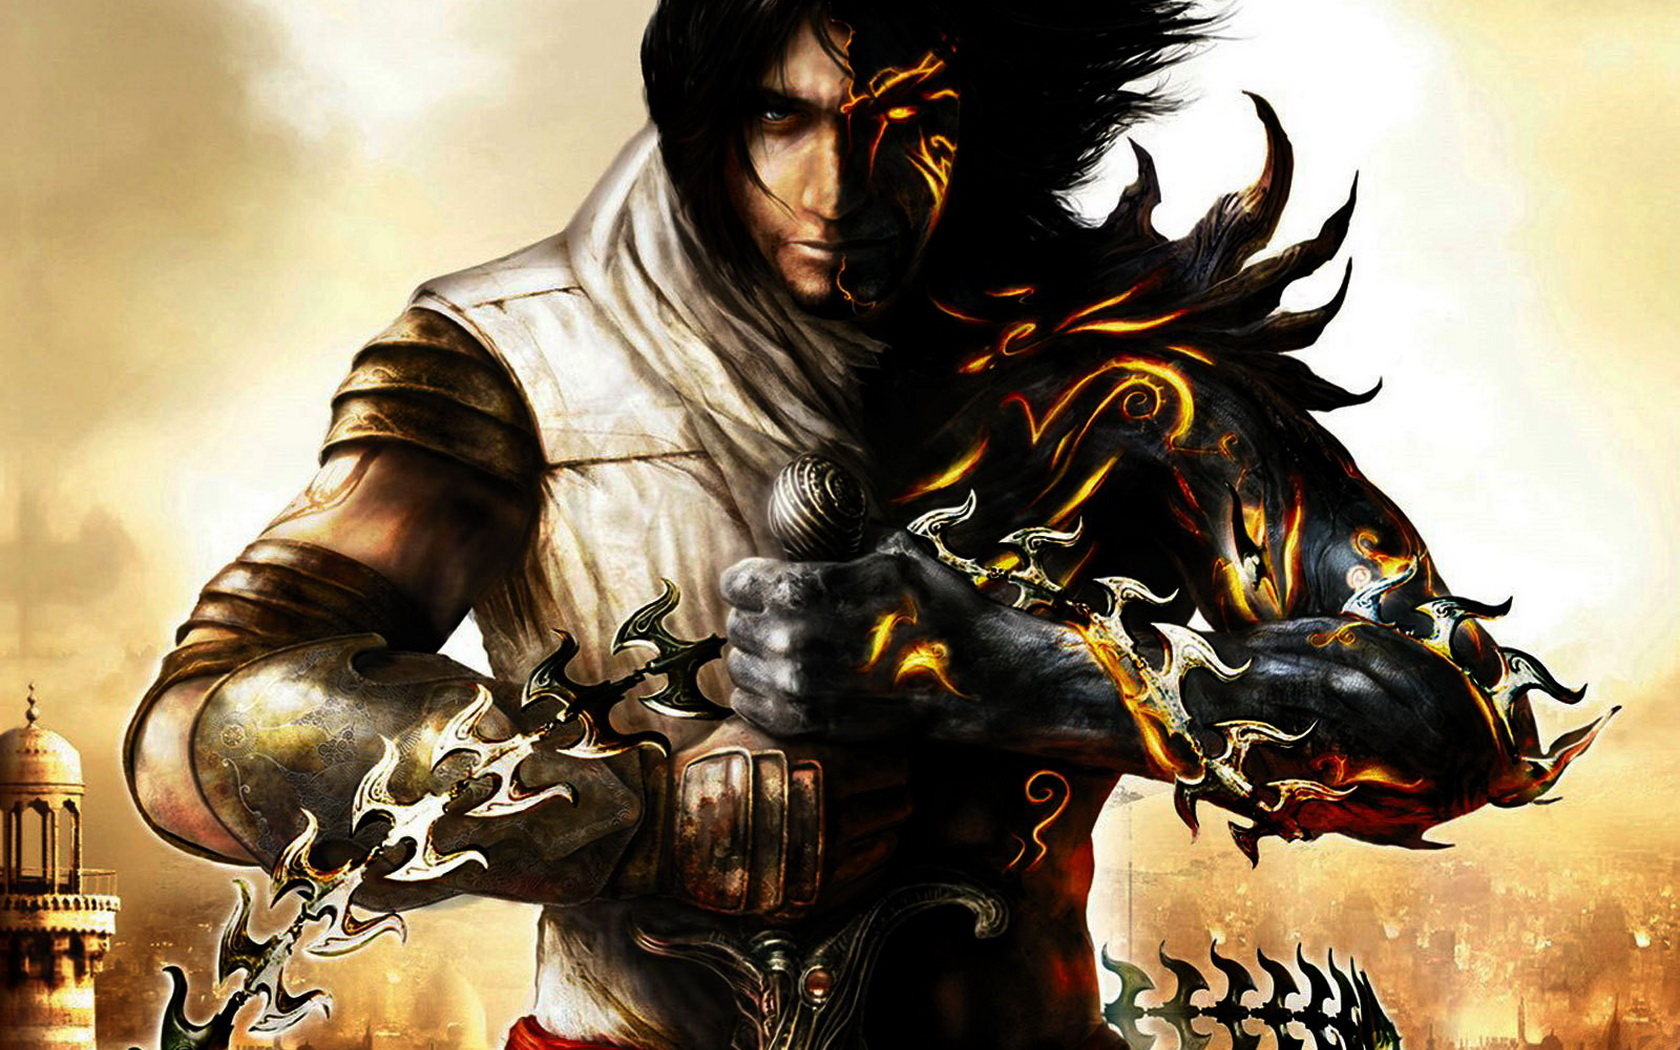 Prince Of Persia The Two Thrones Hd Wallpapers 1080p Prince Of Persia The Two Thrones Computer Wallpapers